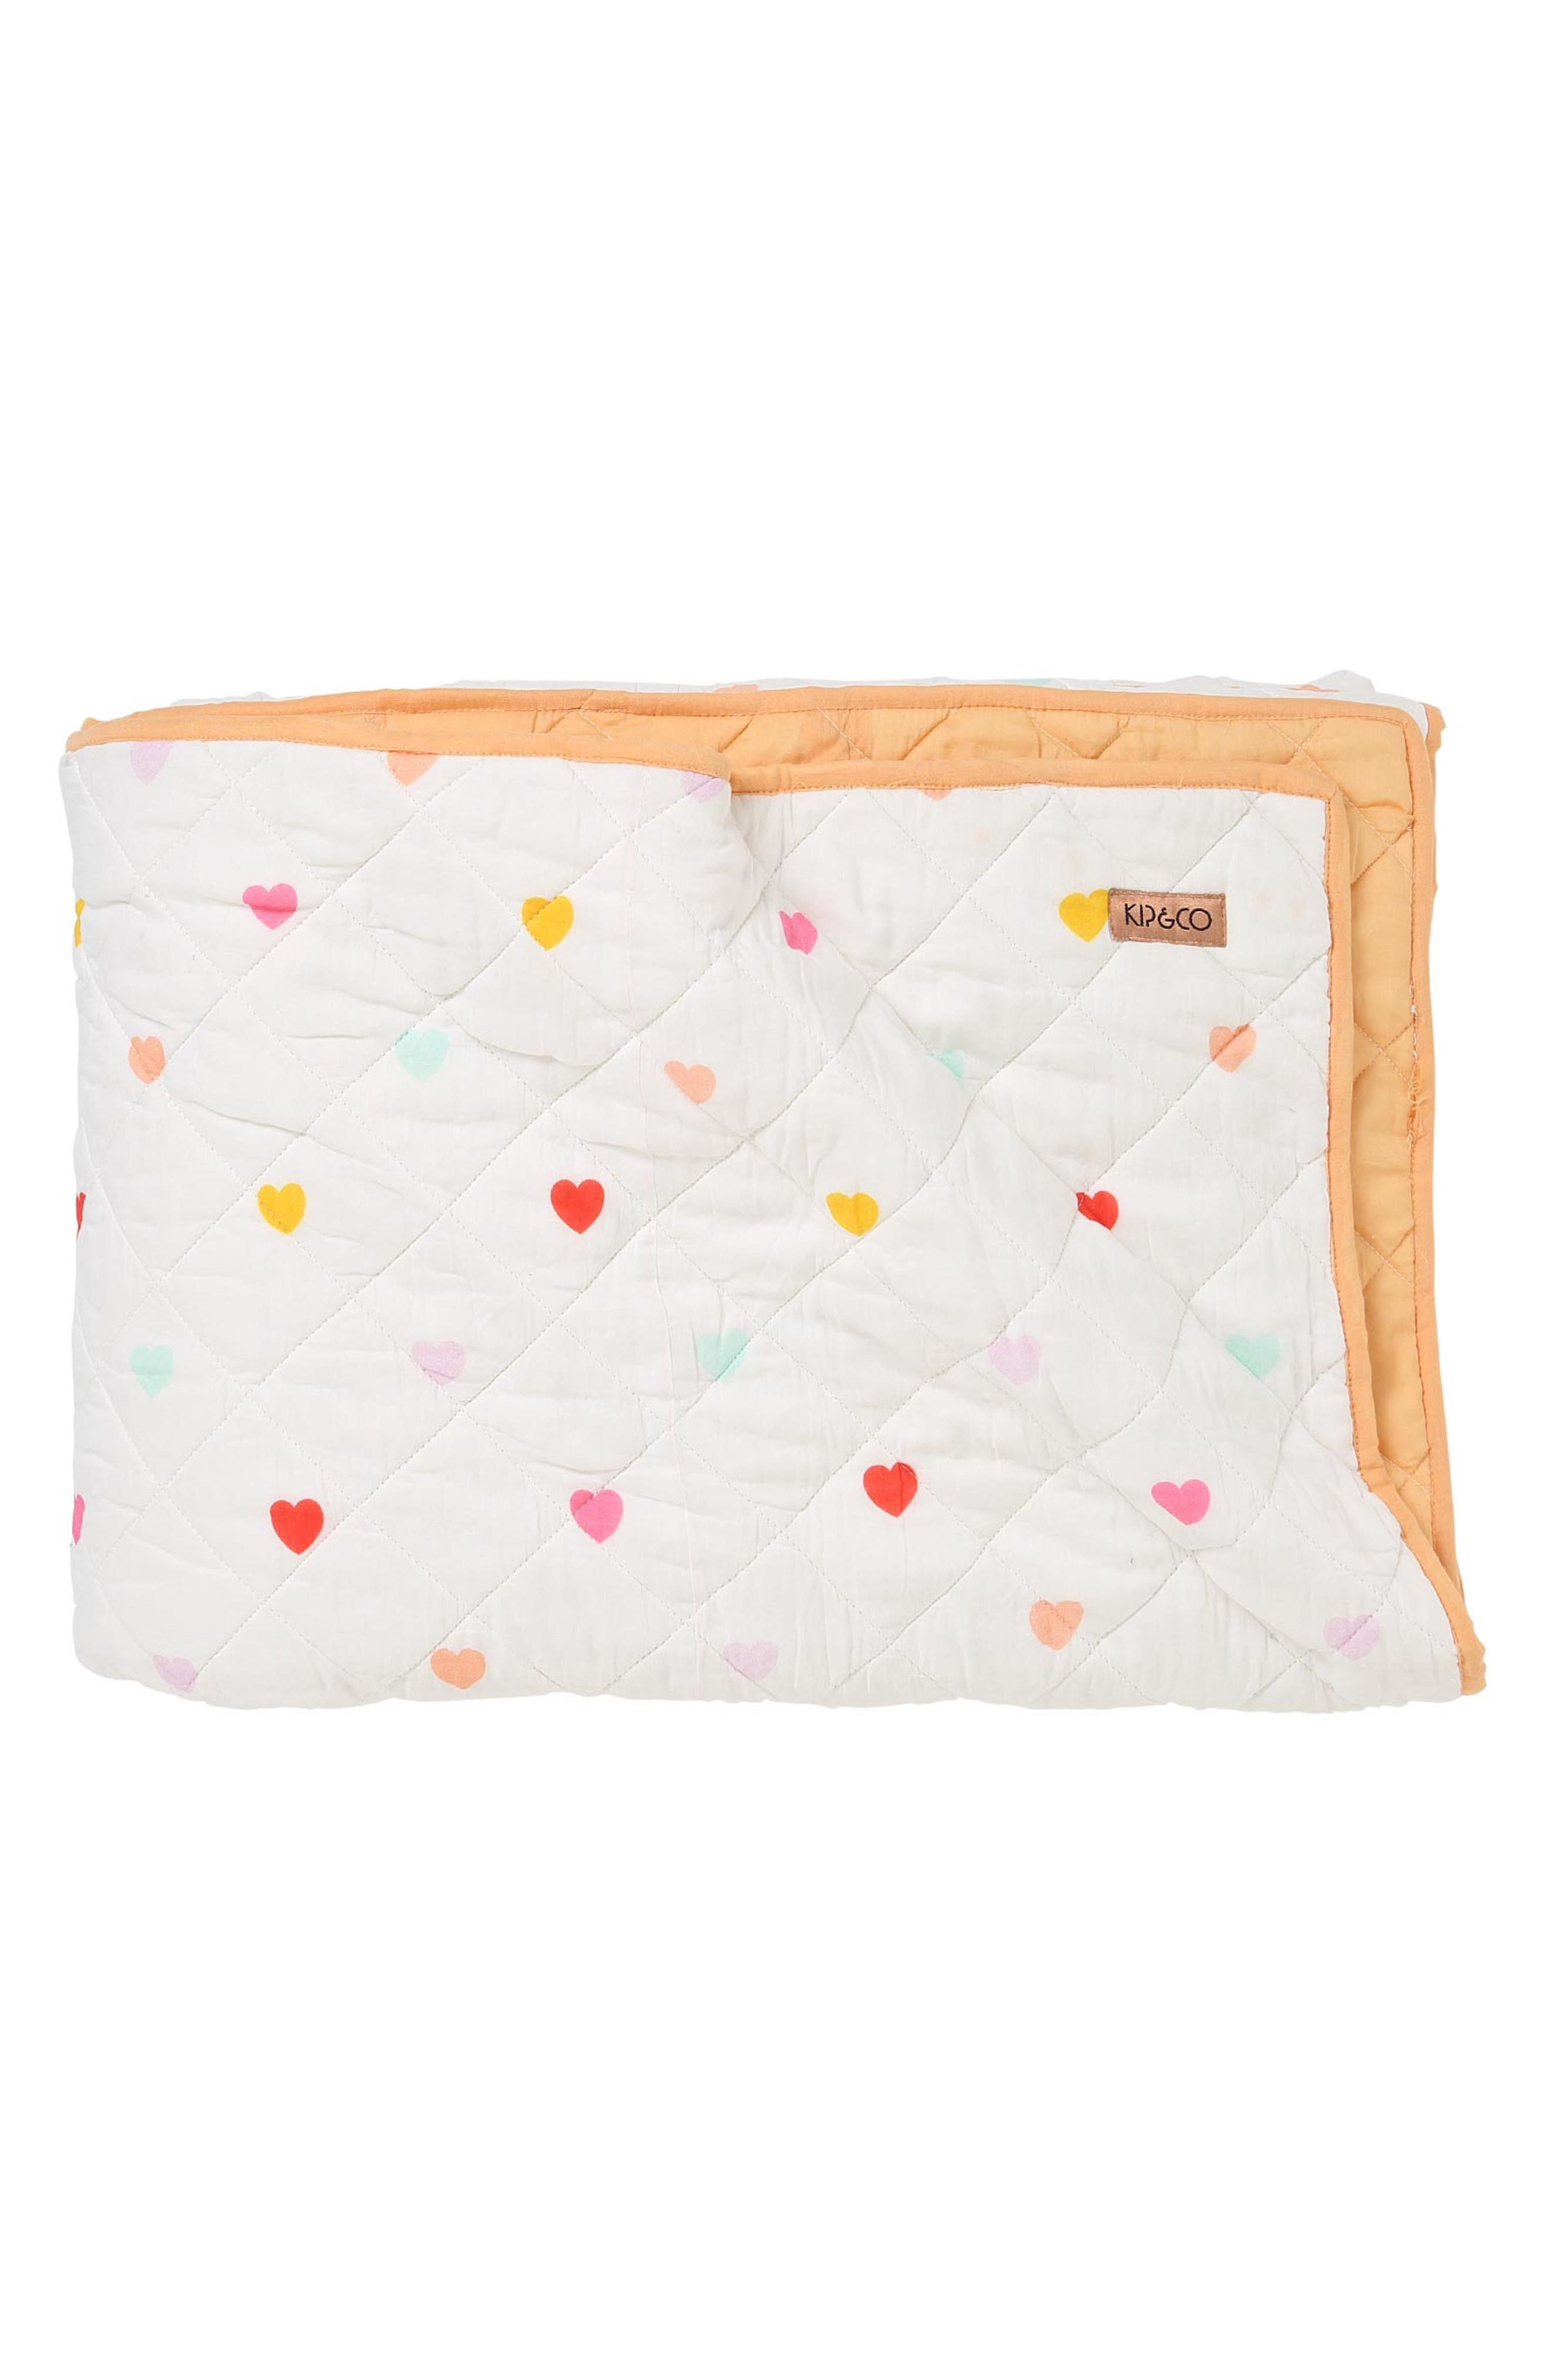 I Heart You Quilted Cotton Comforter,                             Main thumbnail 1, color,                             MULTI